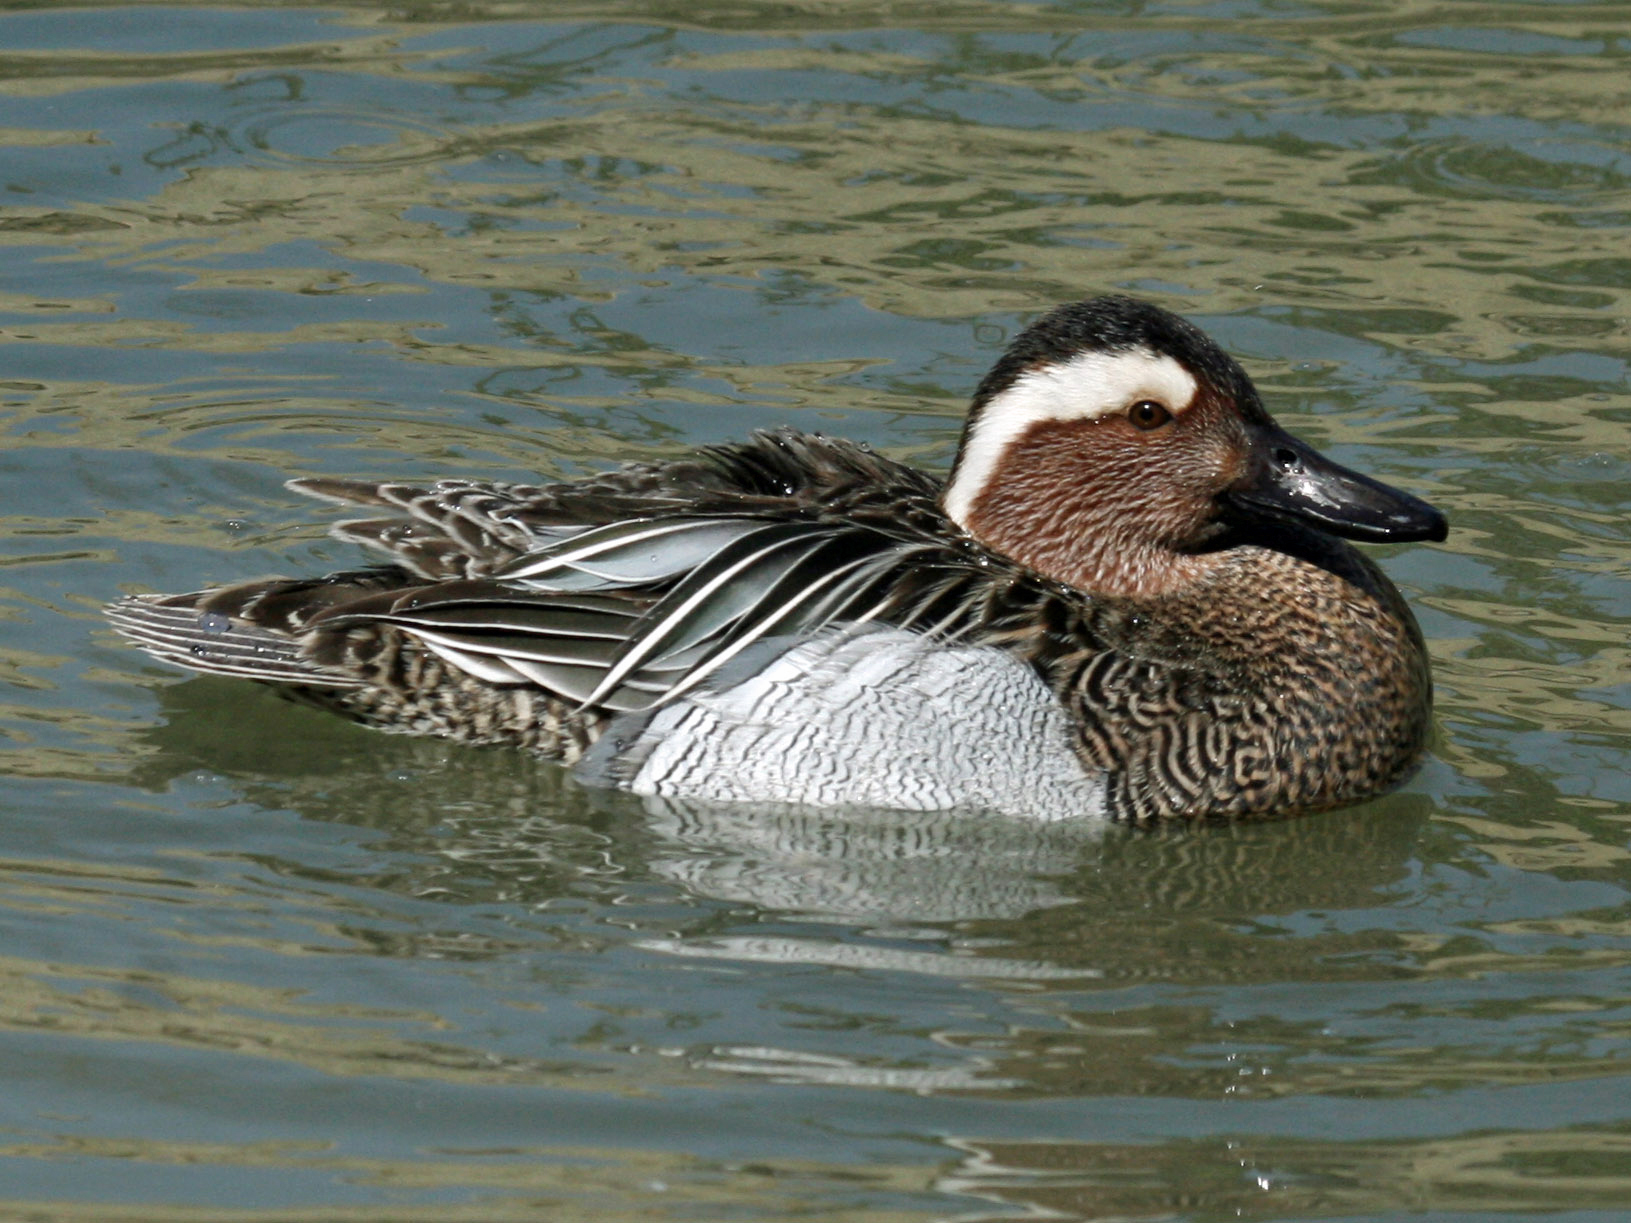 https://upload.wikimedia.org/wikipedia/commons/a/a9/Garganey_%28Anas_querquedula%29_RWD3.jpg